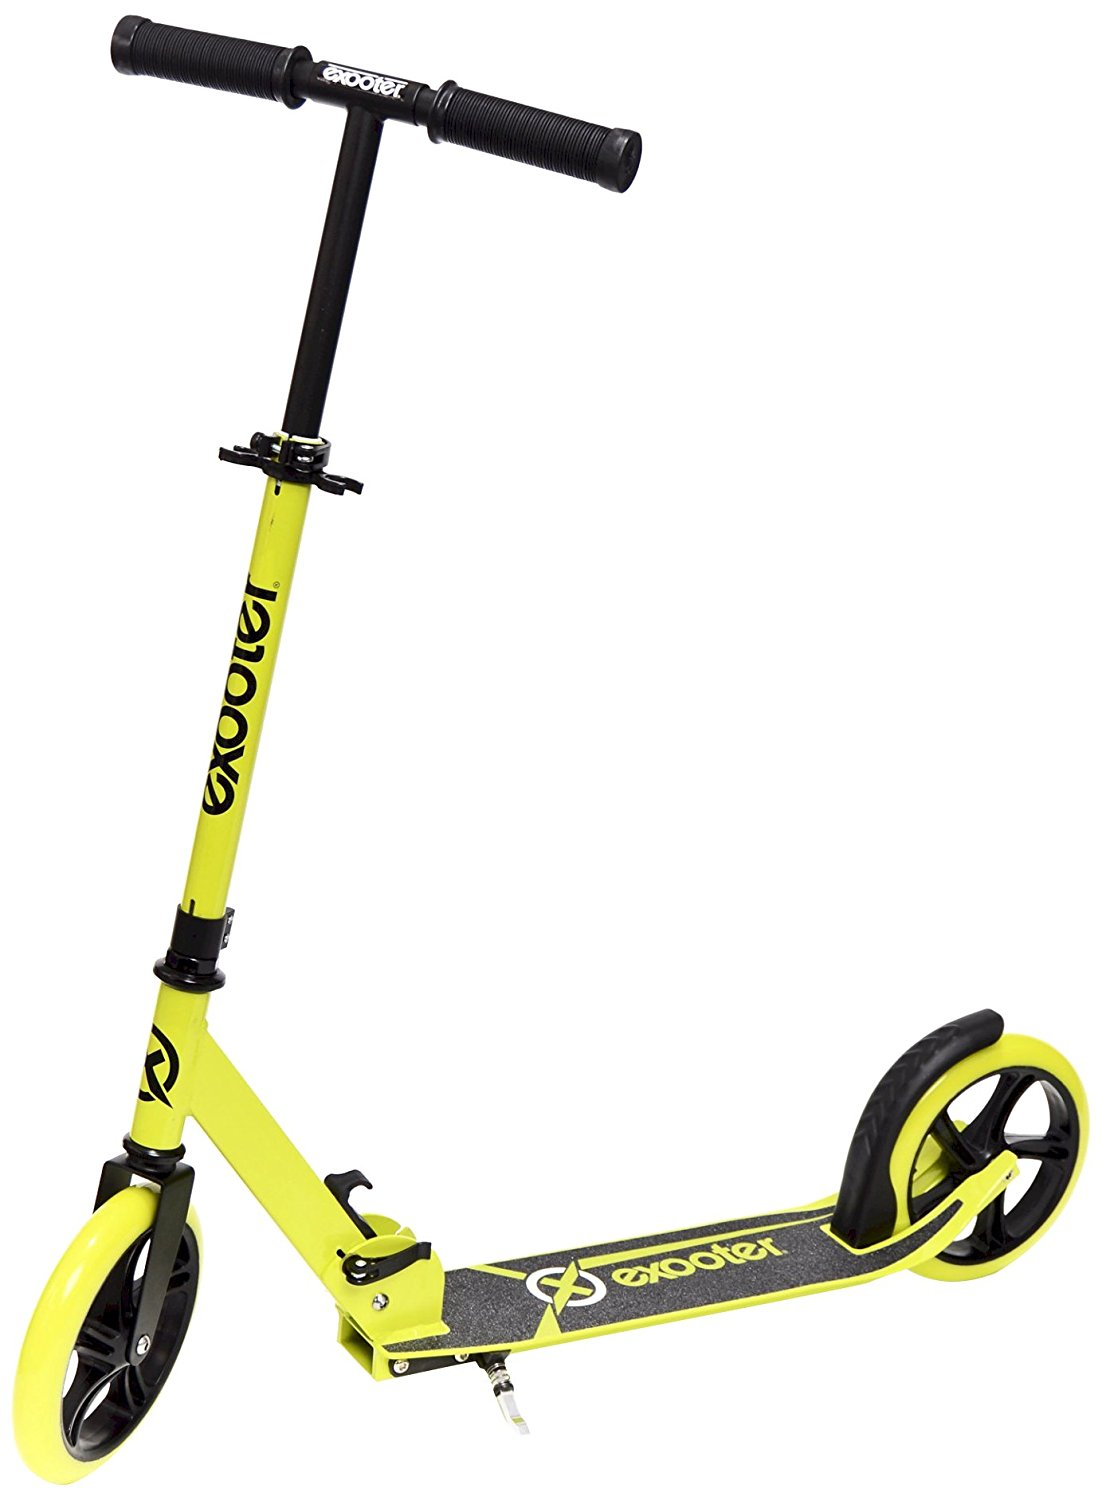 EXOOTER M1450BG Teen Kick Scooter with 200mm Wheels in Vibrant Green